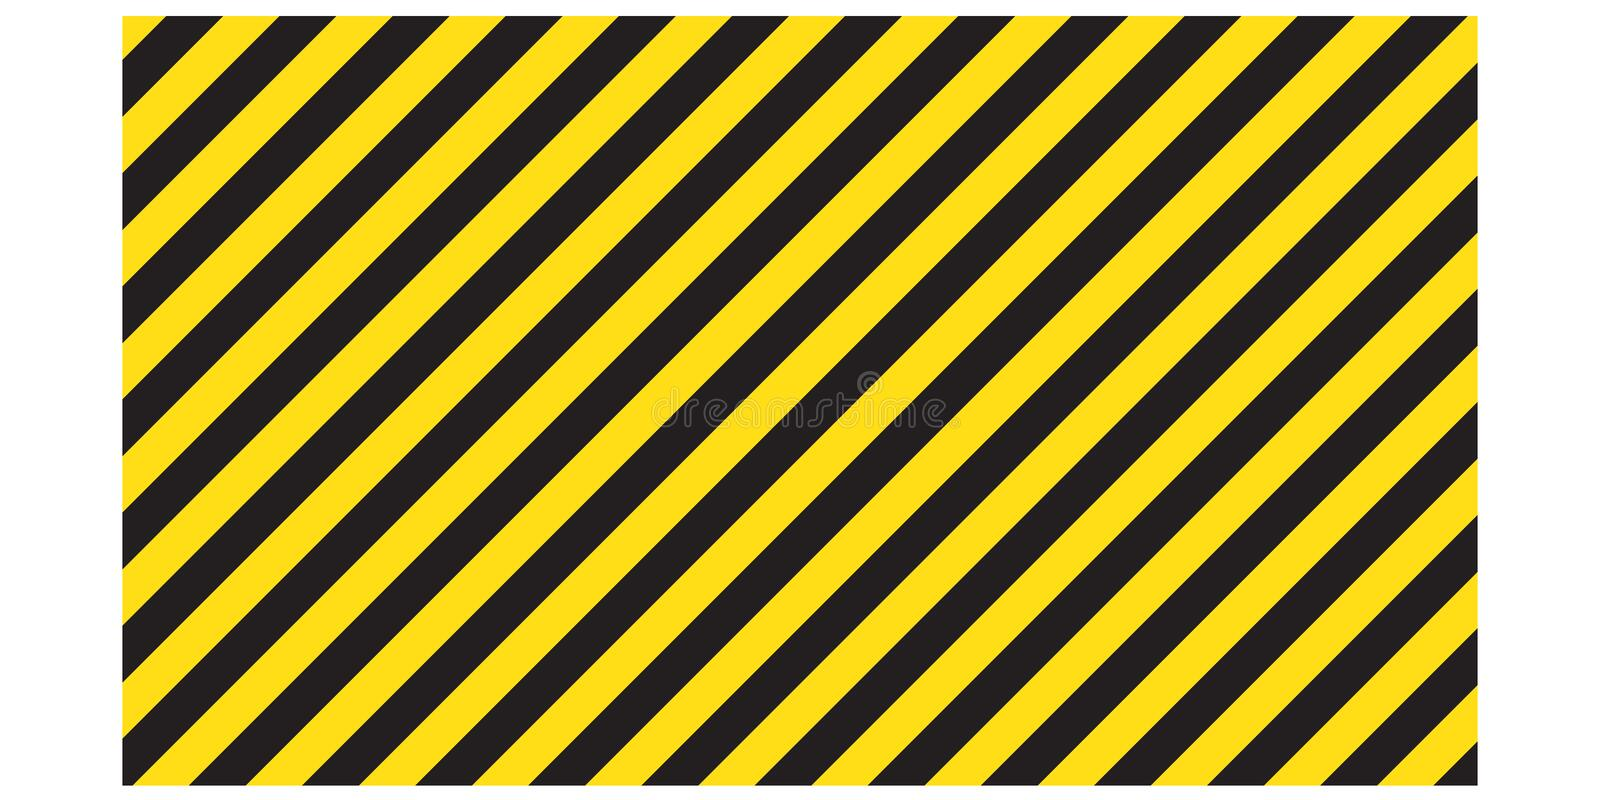 Warning striped rectangular background, yellow and black stripes on the diagonal, a warning to be careful - the potential danger v stock illustration